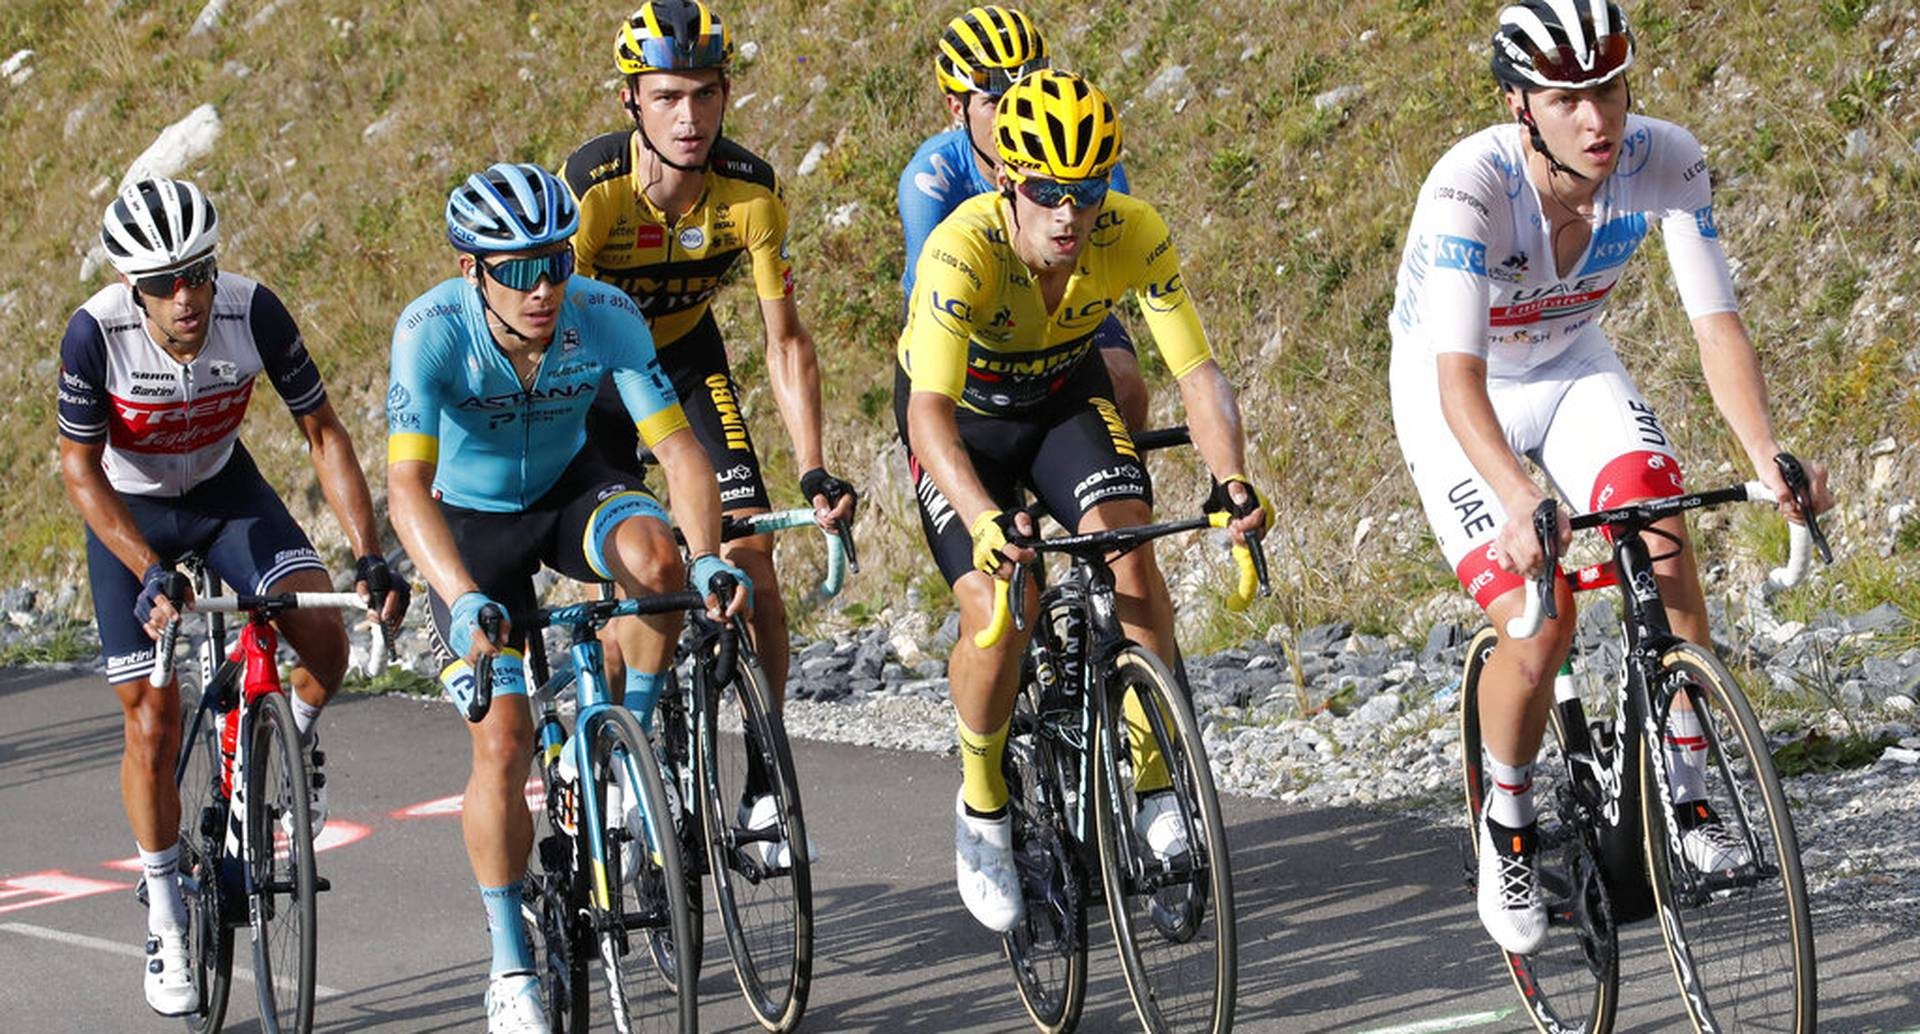 From left, Australia's Richie Porte, Colombia's Miguel Angel Lopez, Sepp Kuss of the US, Slovenia's Primoz Roglic wearing the overall leader's yellow jersey, and Slovenia's Tadej Pogacar, climb the Loze pass during the stage 17 of the Tour de France cycling race over 170 kilometers (105 miles), with start in Grenoble and finish in Meribel Col de la Loze, Wednesday, Sept. 16, 2020. (AP Photo/Christophe Ena)